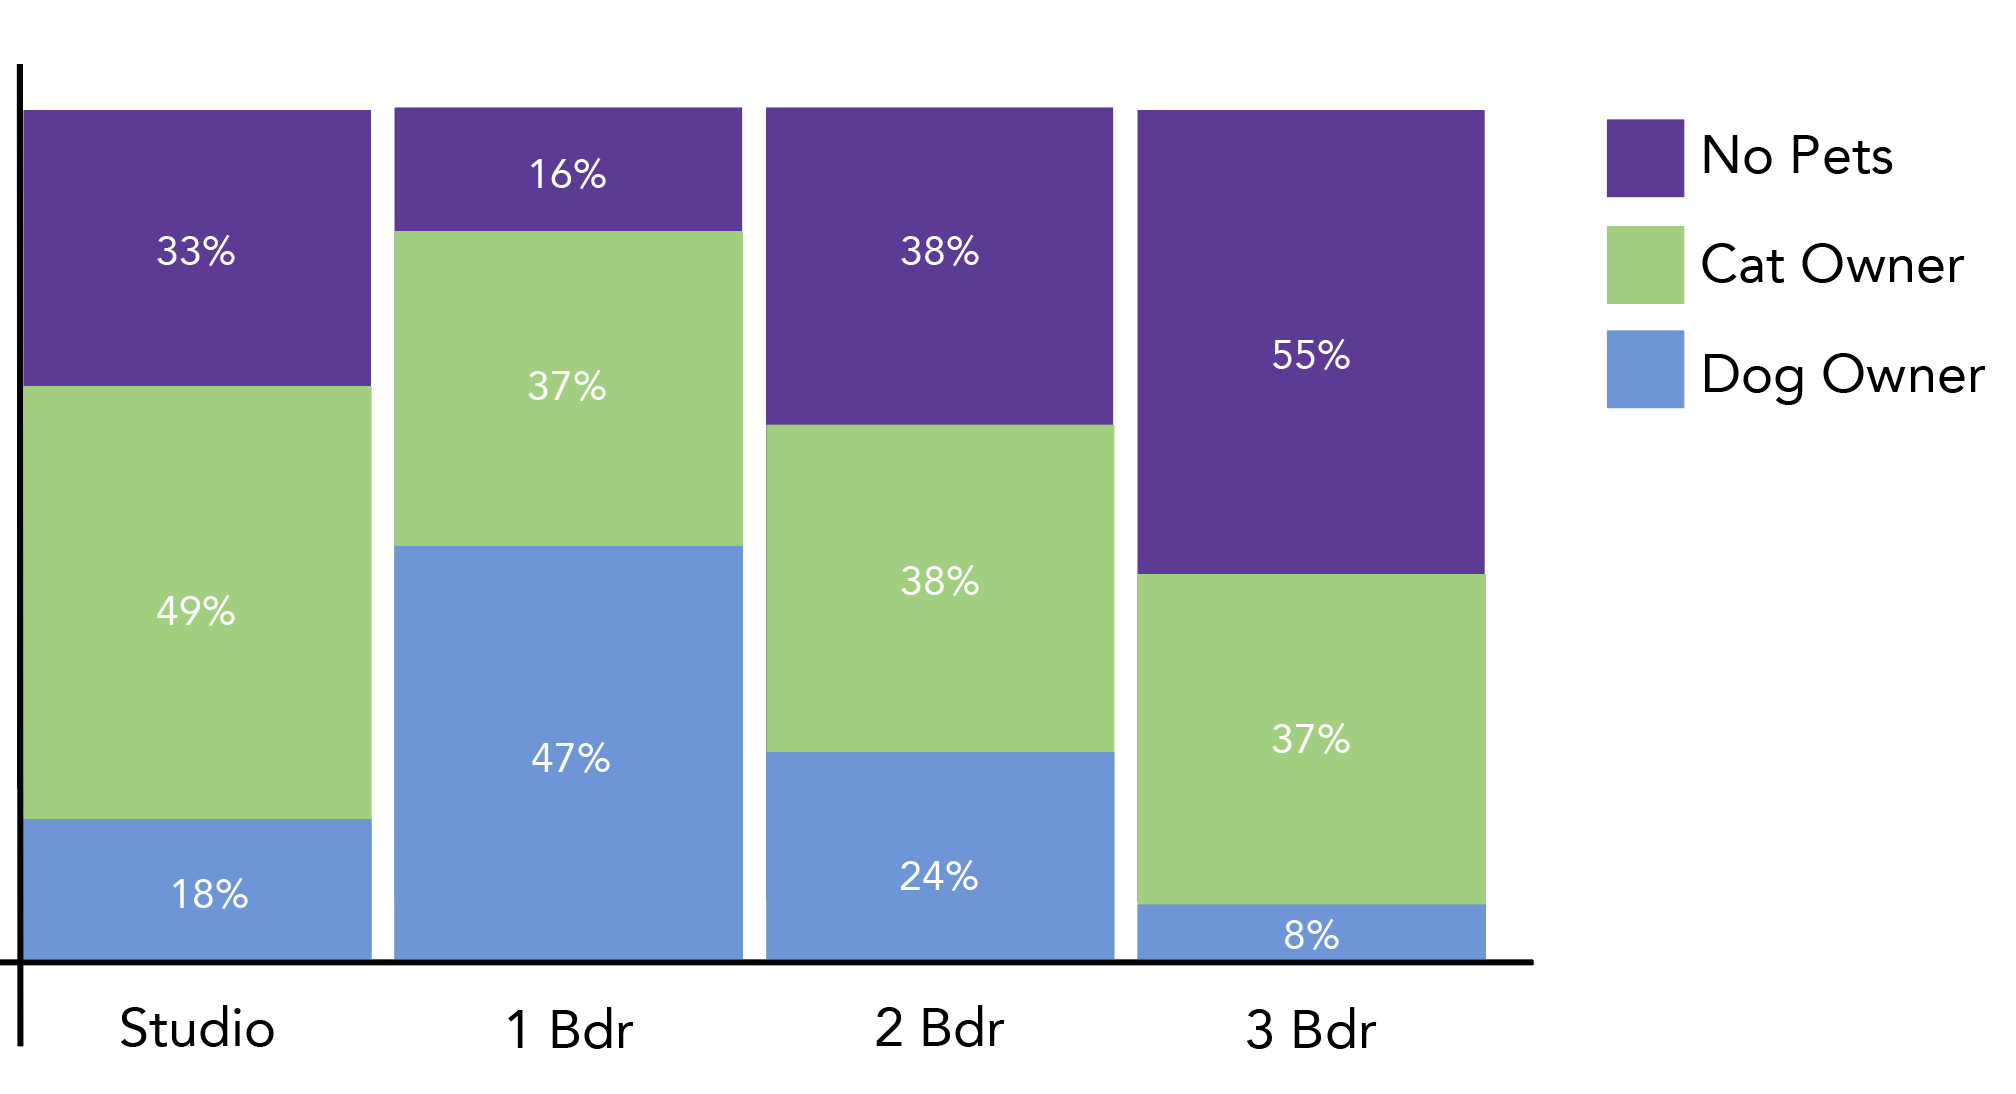 A stacked bar graph with sections consisting of dog owner (blue), cat owner (green), and no pets (purple).